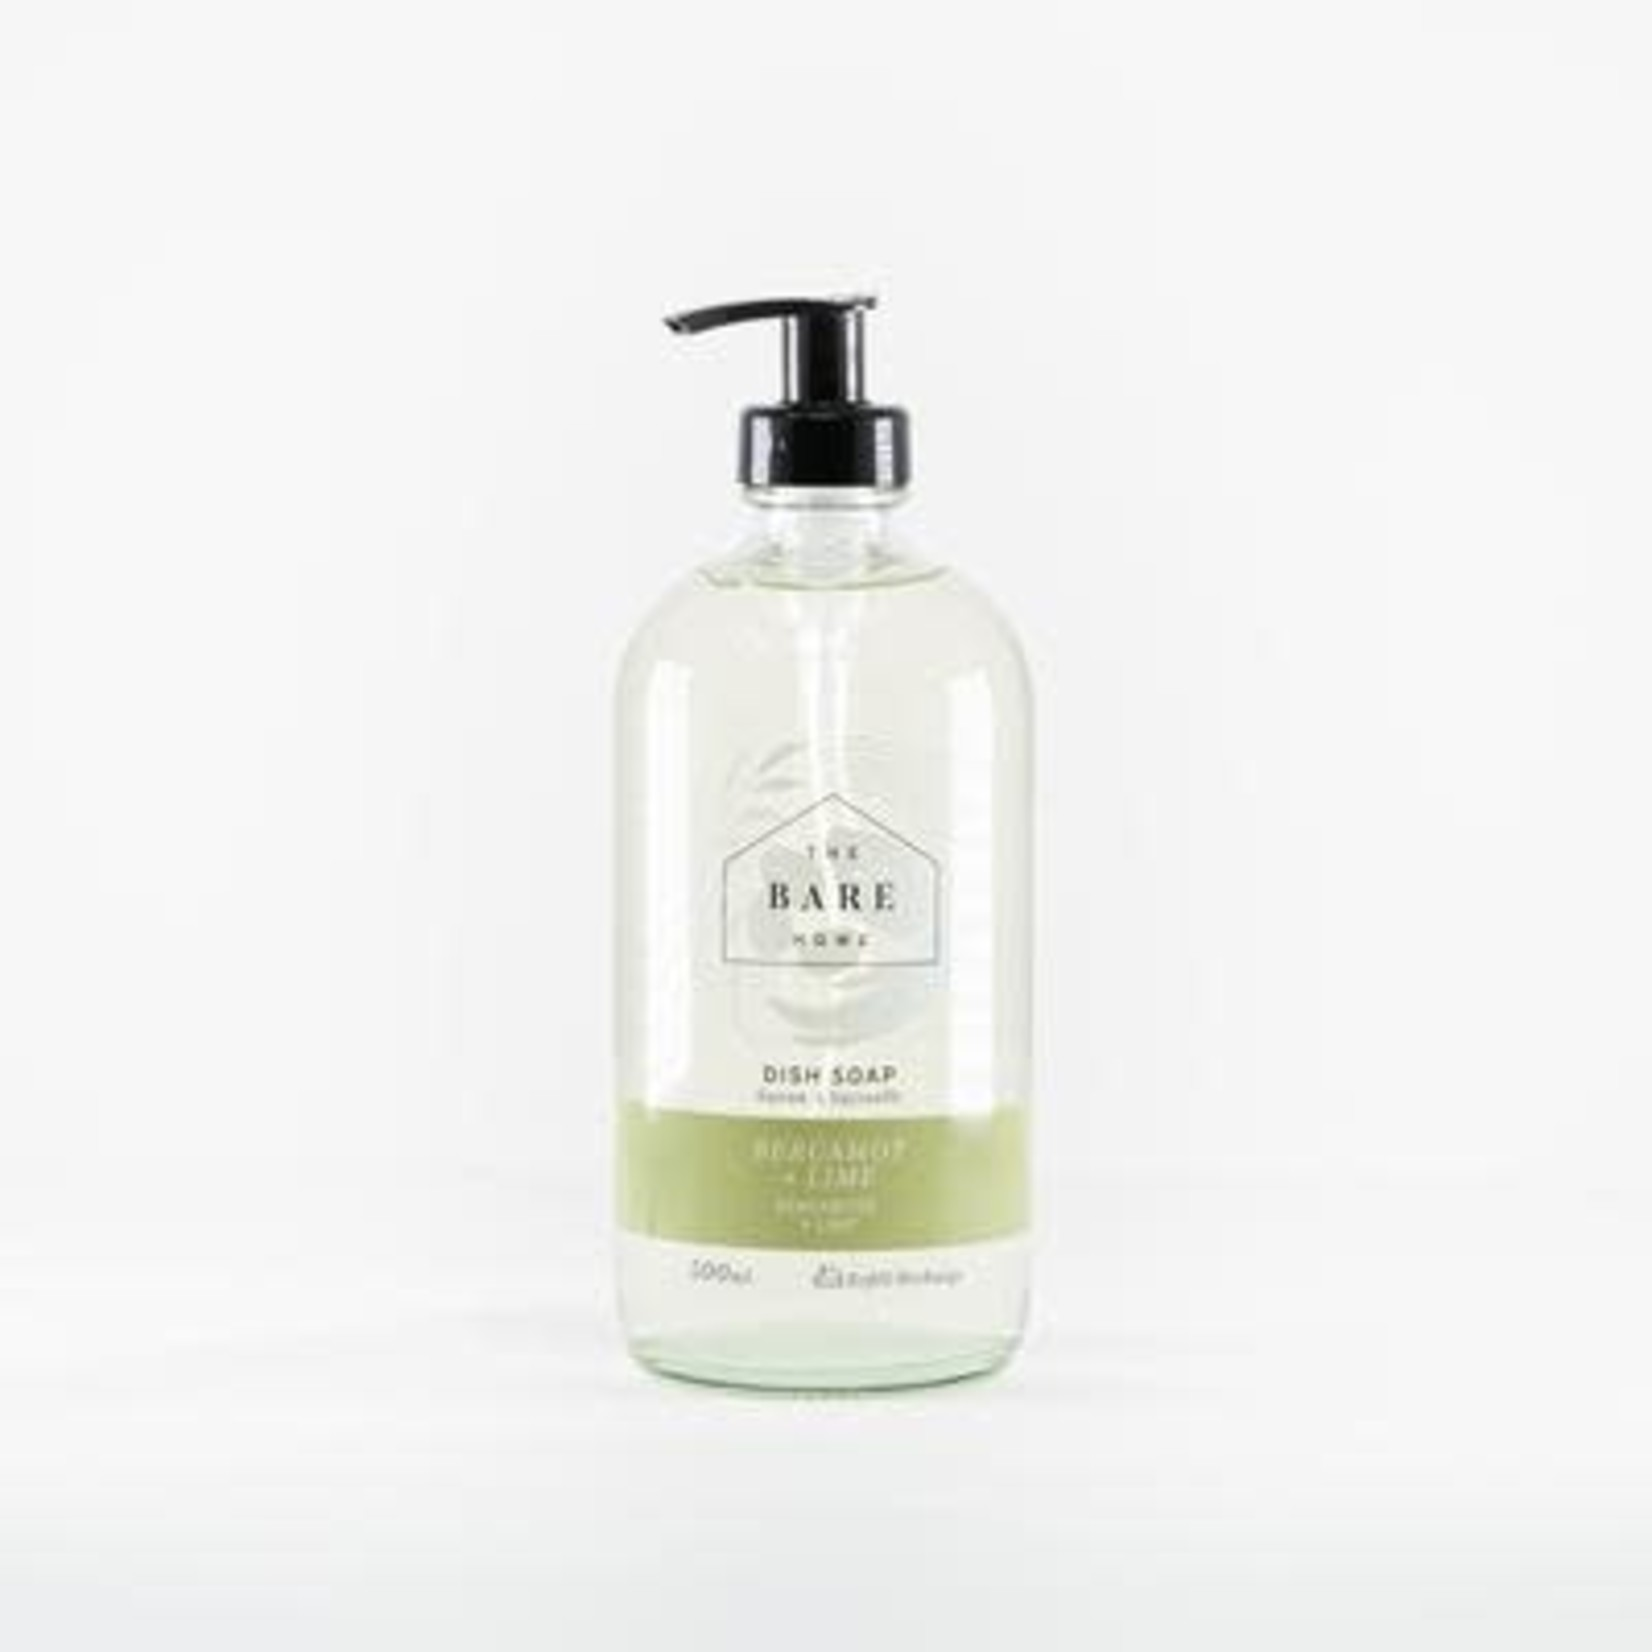 The Bare Home The Bare Home Dish Soap